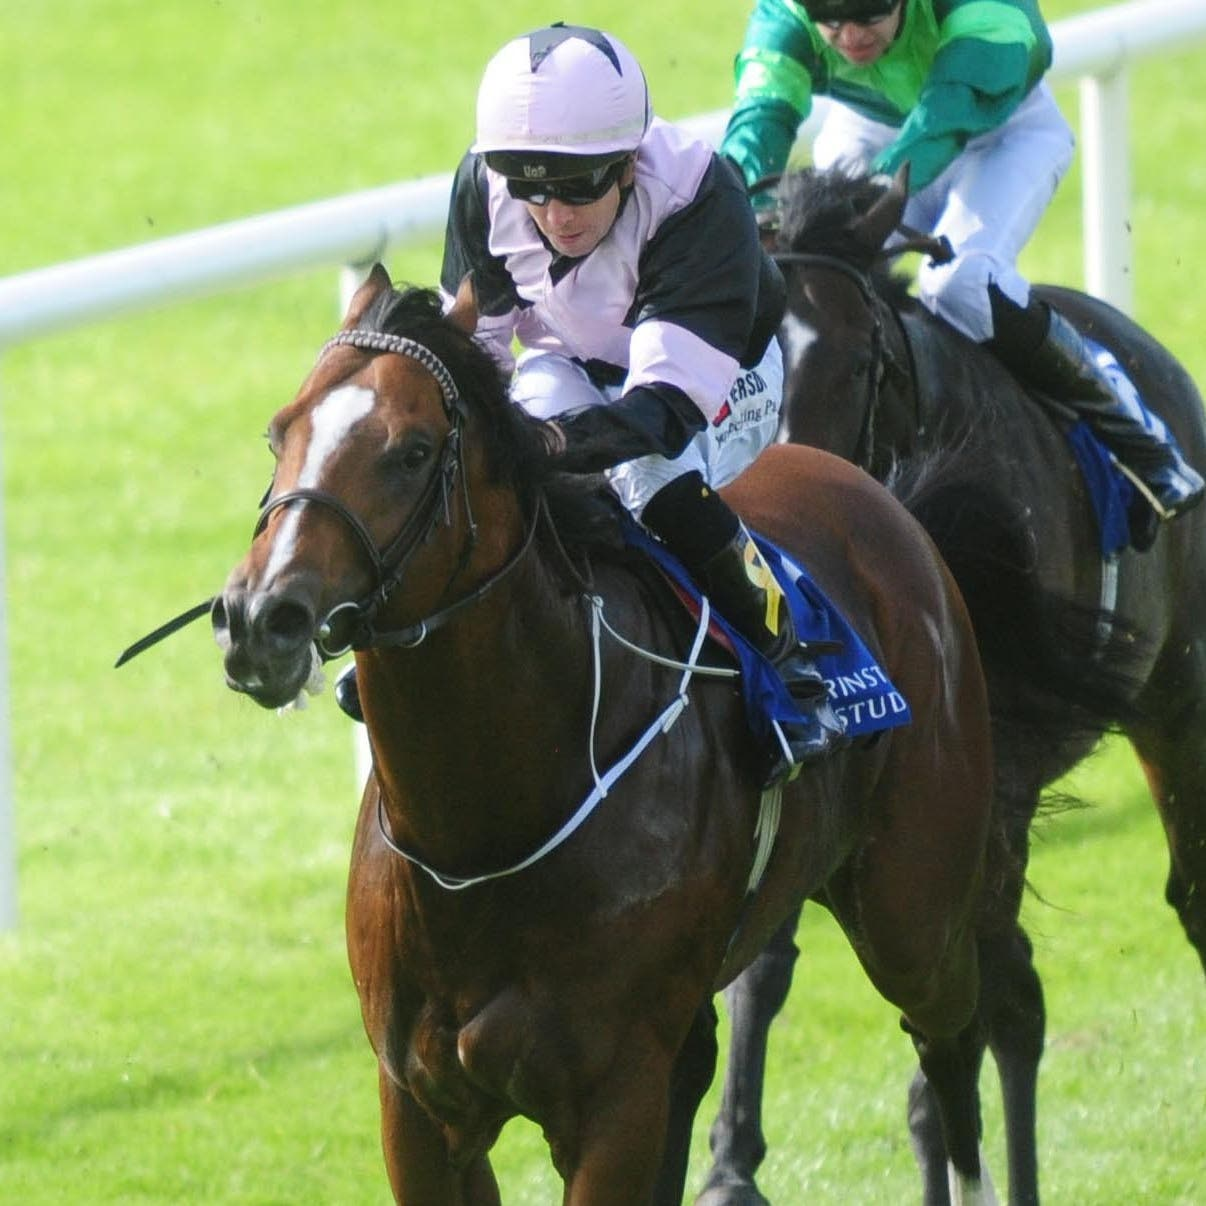 Hit The Bid will not be ready in time for Ascot